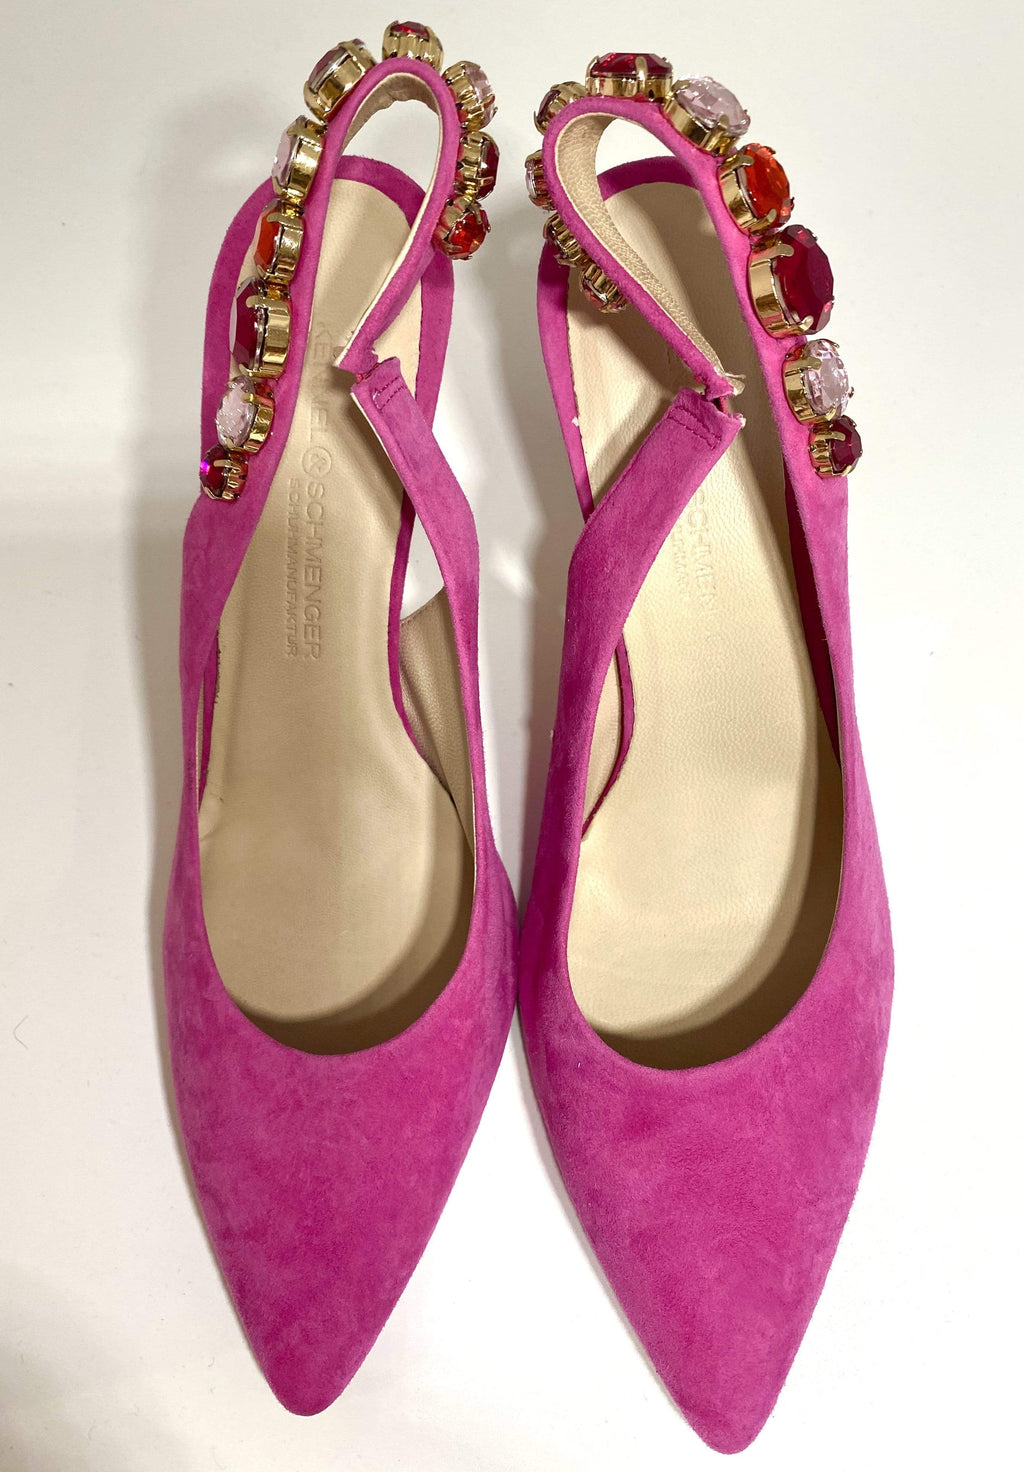 Kennel & Schmenger Shoes Kennel & Schmenger Miley Fuchsia Sling Back 91-83930-387 izzi-of-baslow